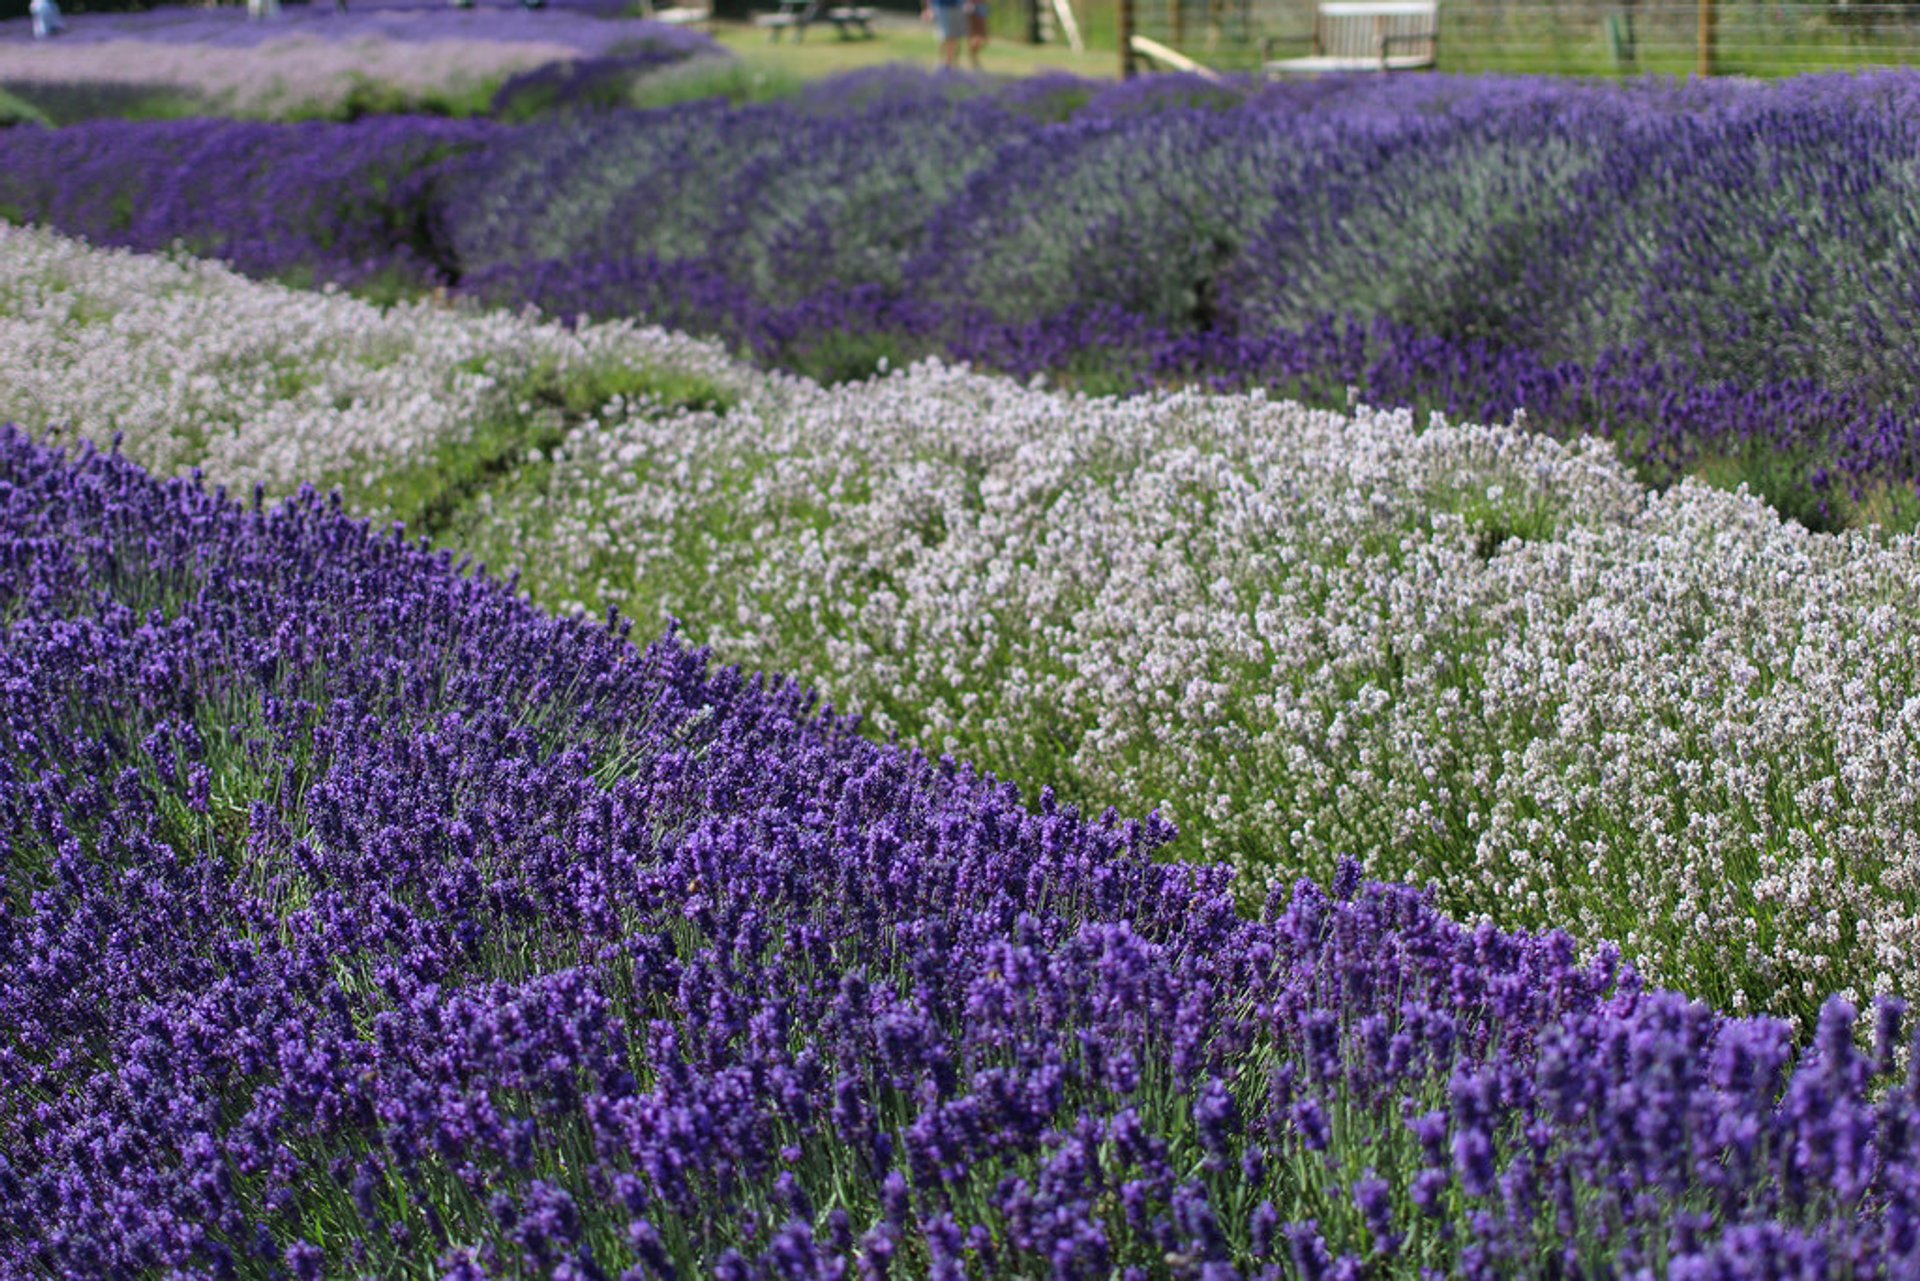 Lavender Blooming in England - Best Season 2019